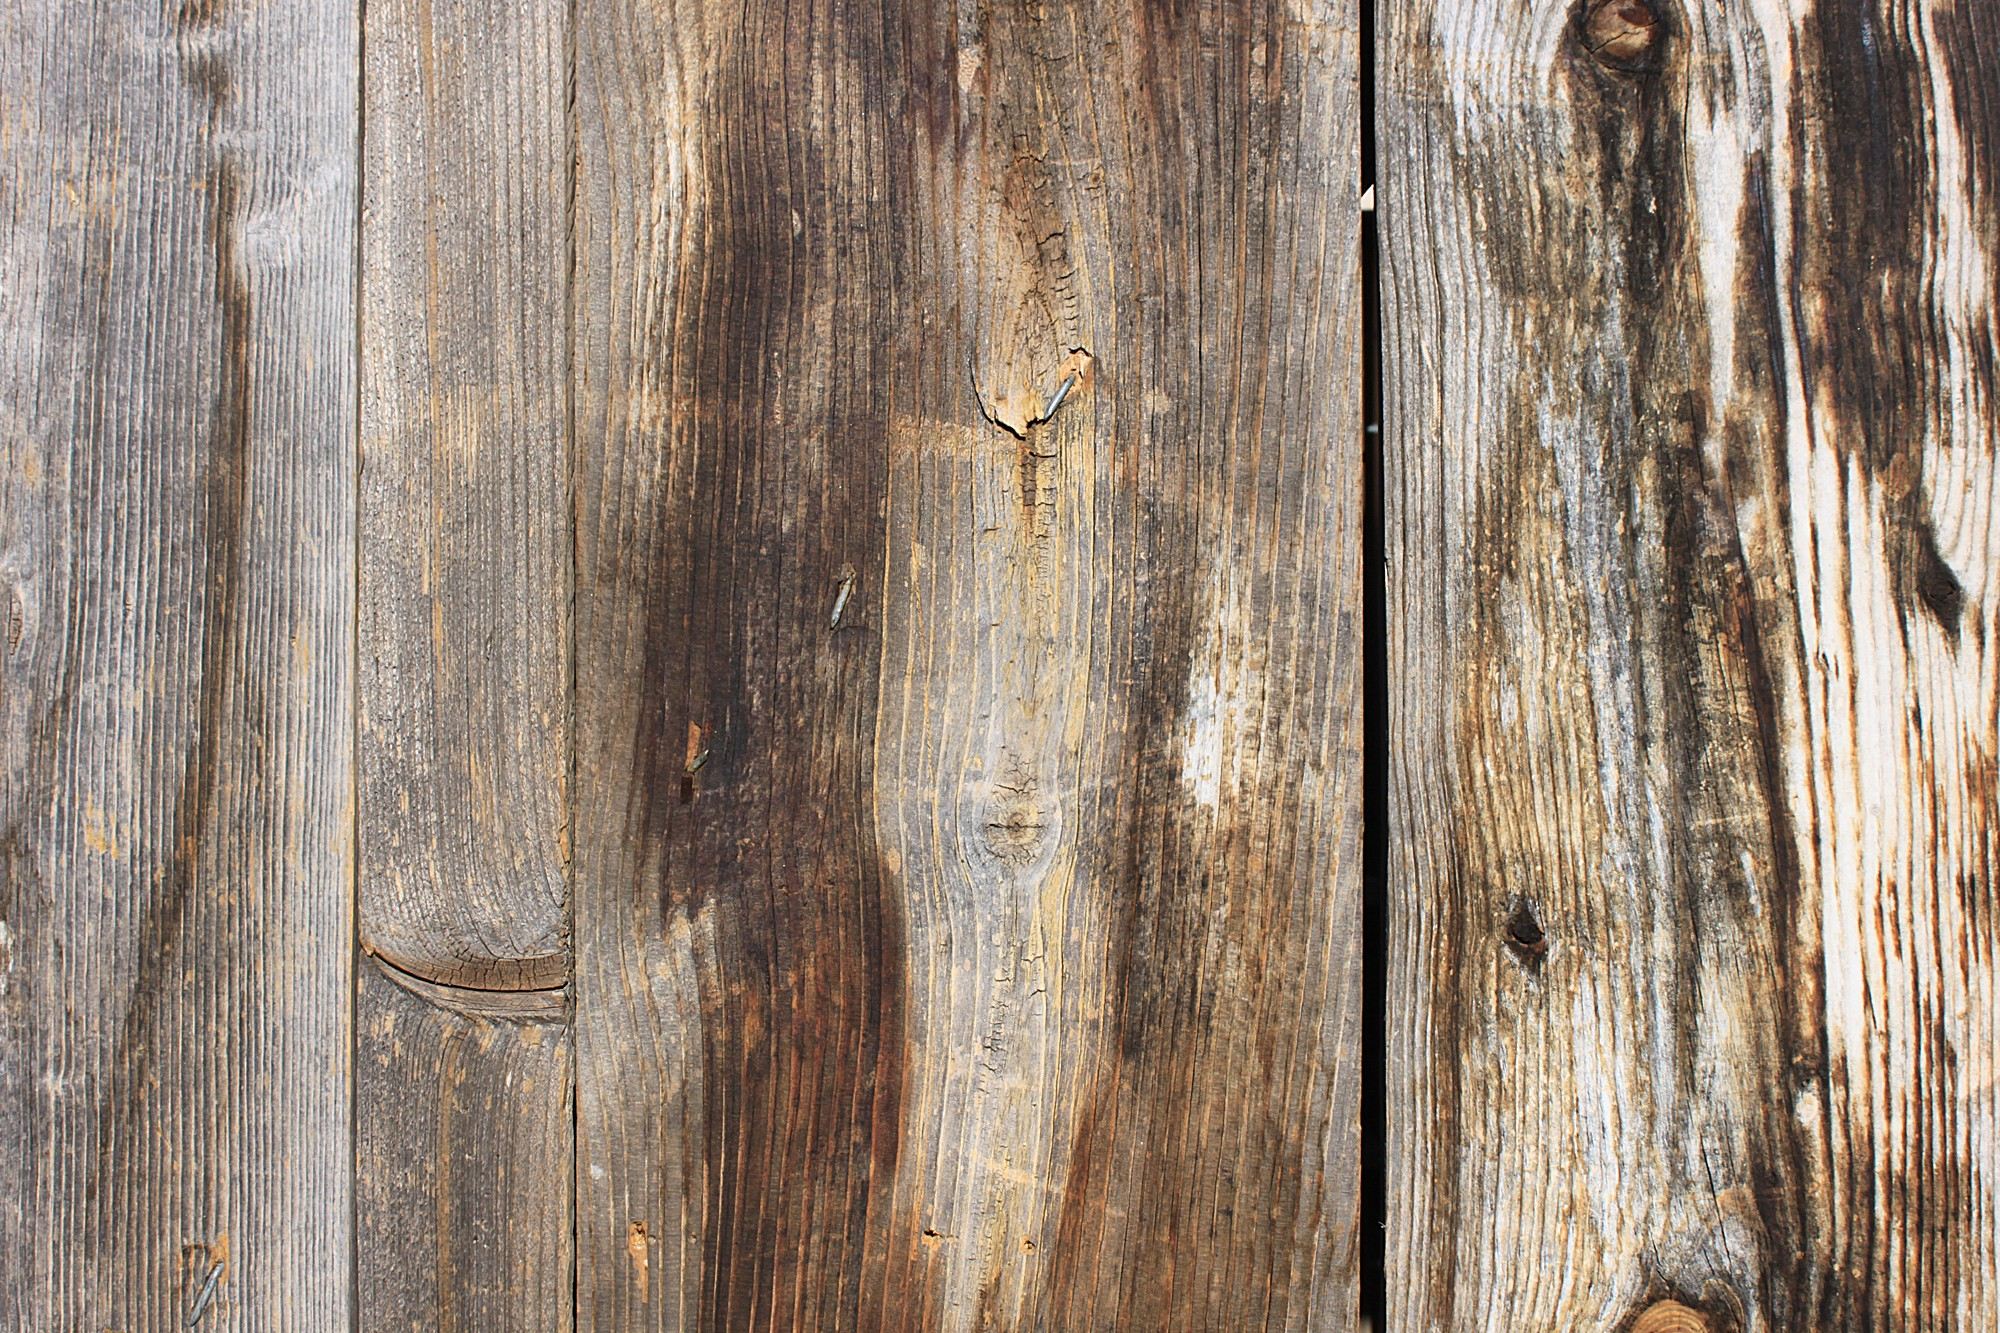 Vintage Rustic Wood background ·① Download free amazing ...